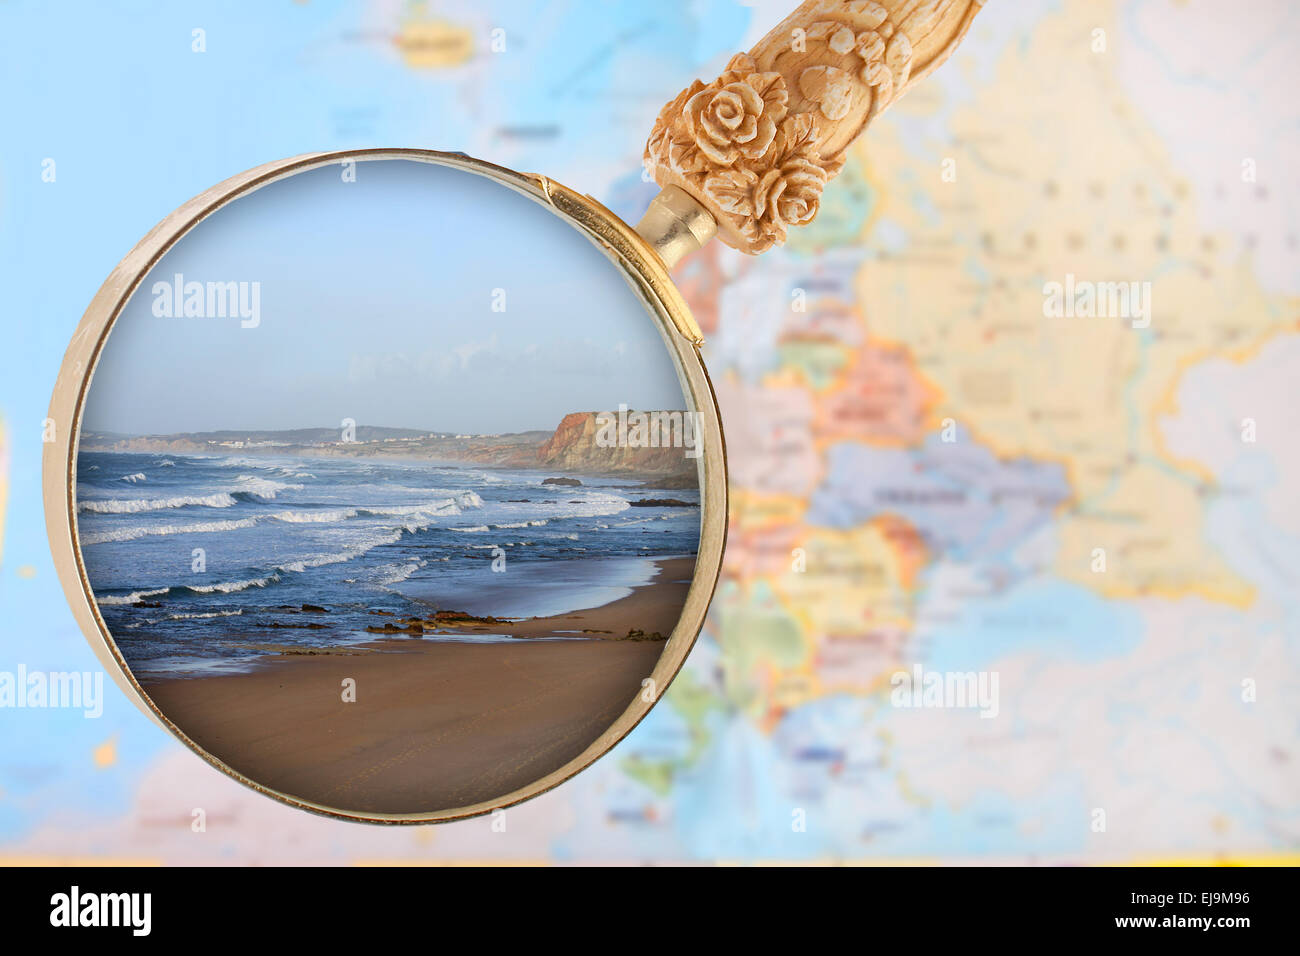 Looking In On Baleal Beach Portugal Popular With Surfers With - Portugal map baleal